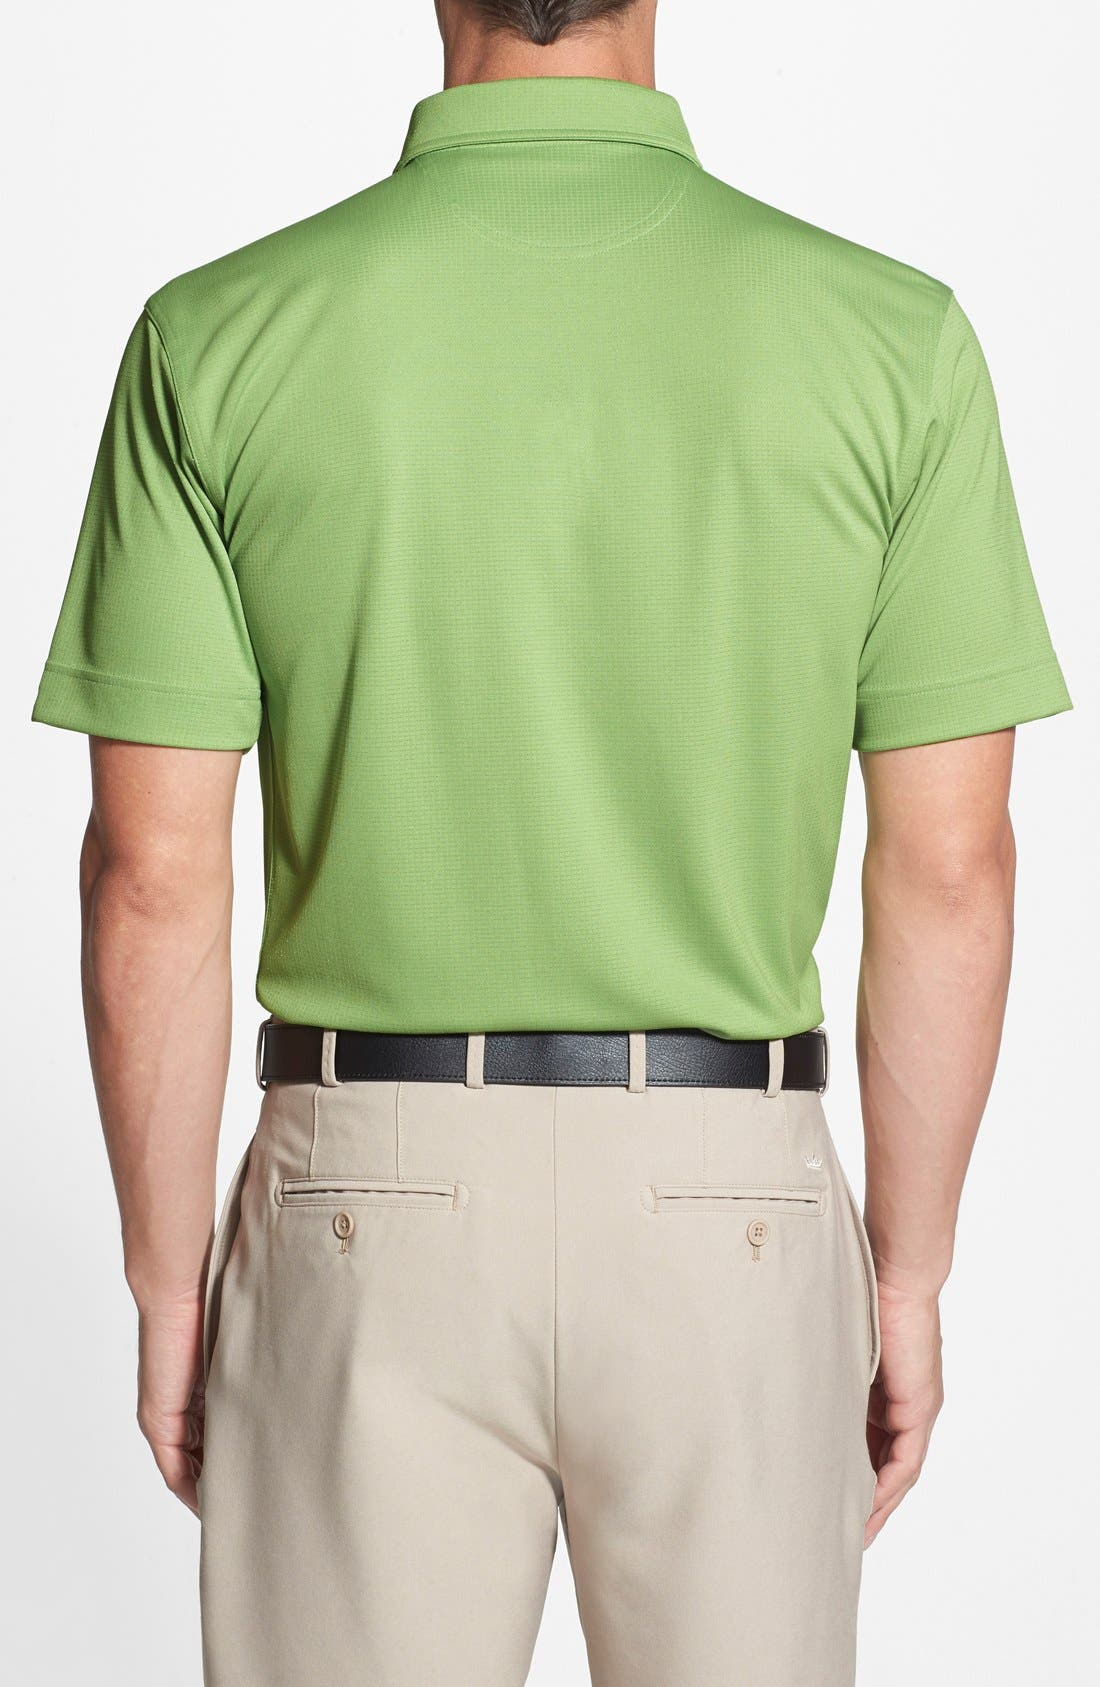 Seattle Seahawks - Genre DryTec Moisture Wicking Polo,                             Alternate thumbnail 3, color,                             333